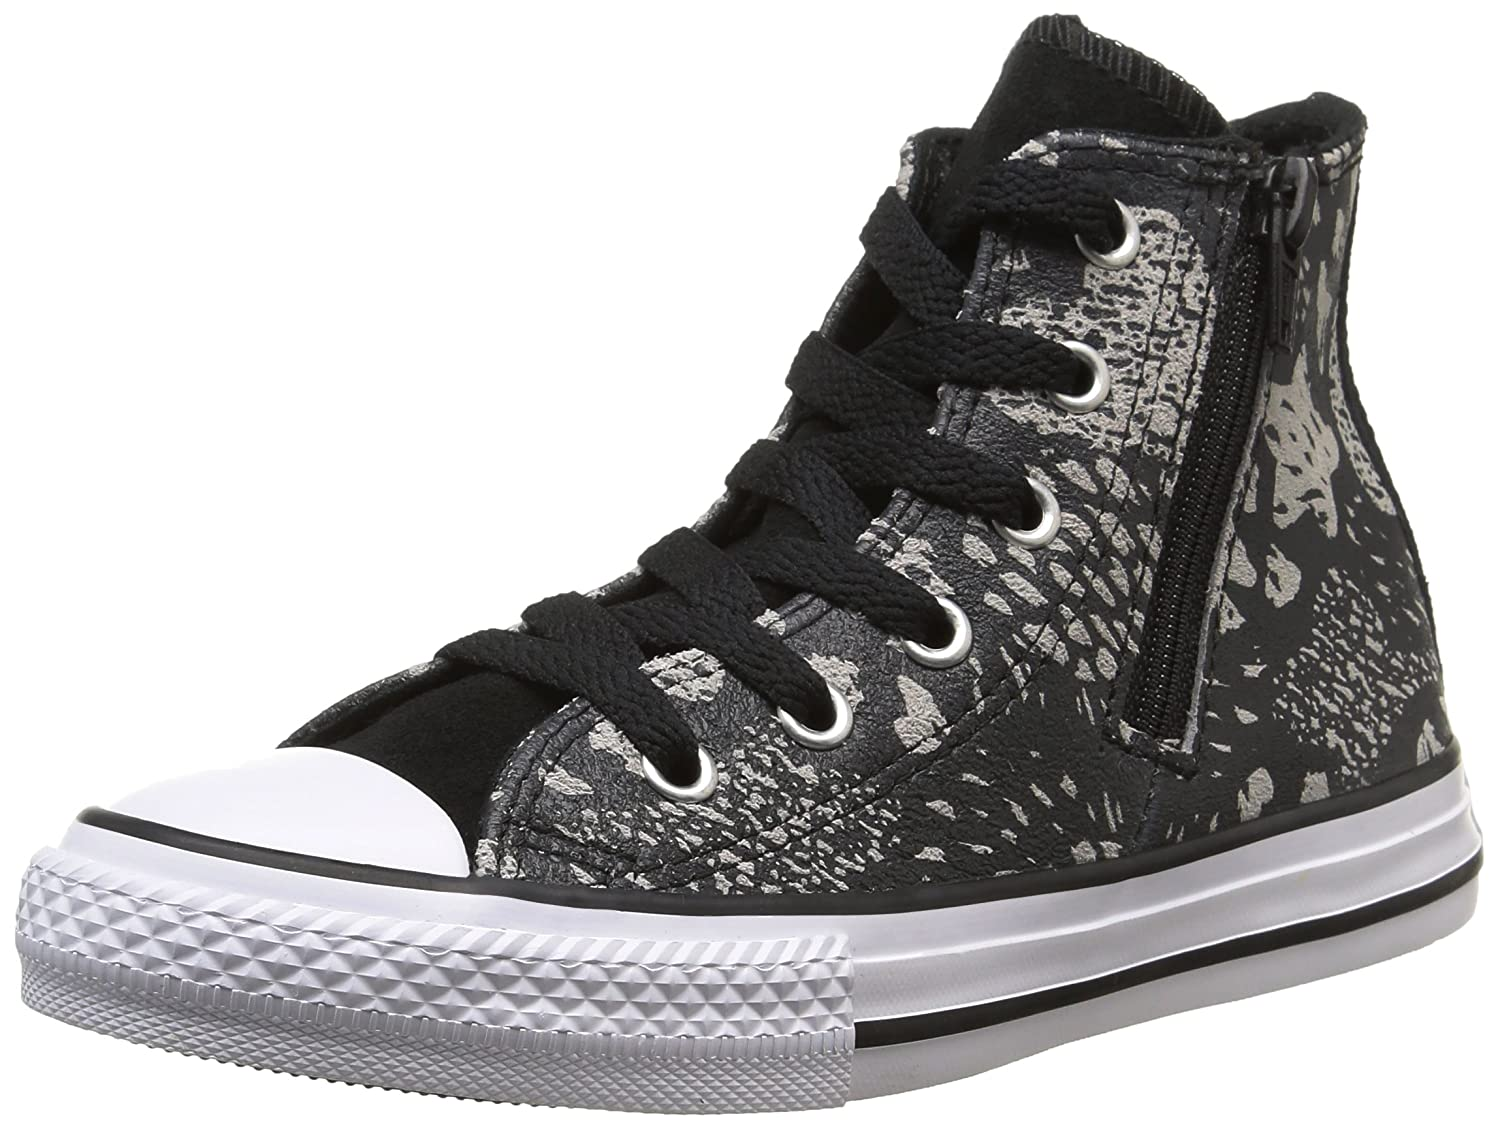 Converse Ct Bb Animal Zp Unisex Kids' Low-Top Sneakers